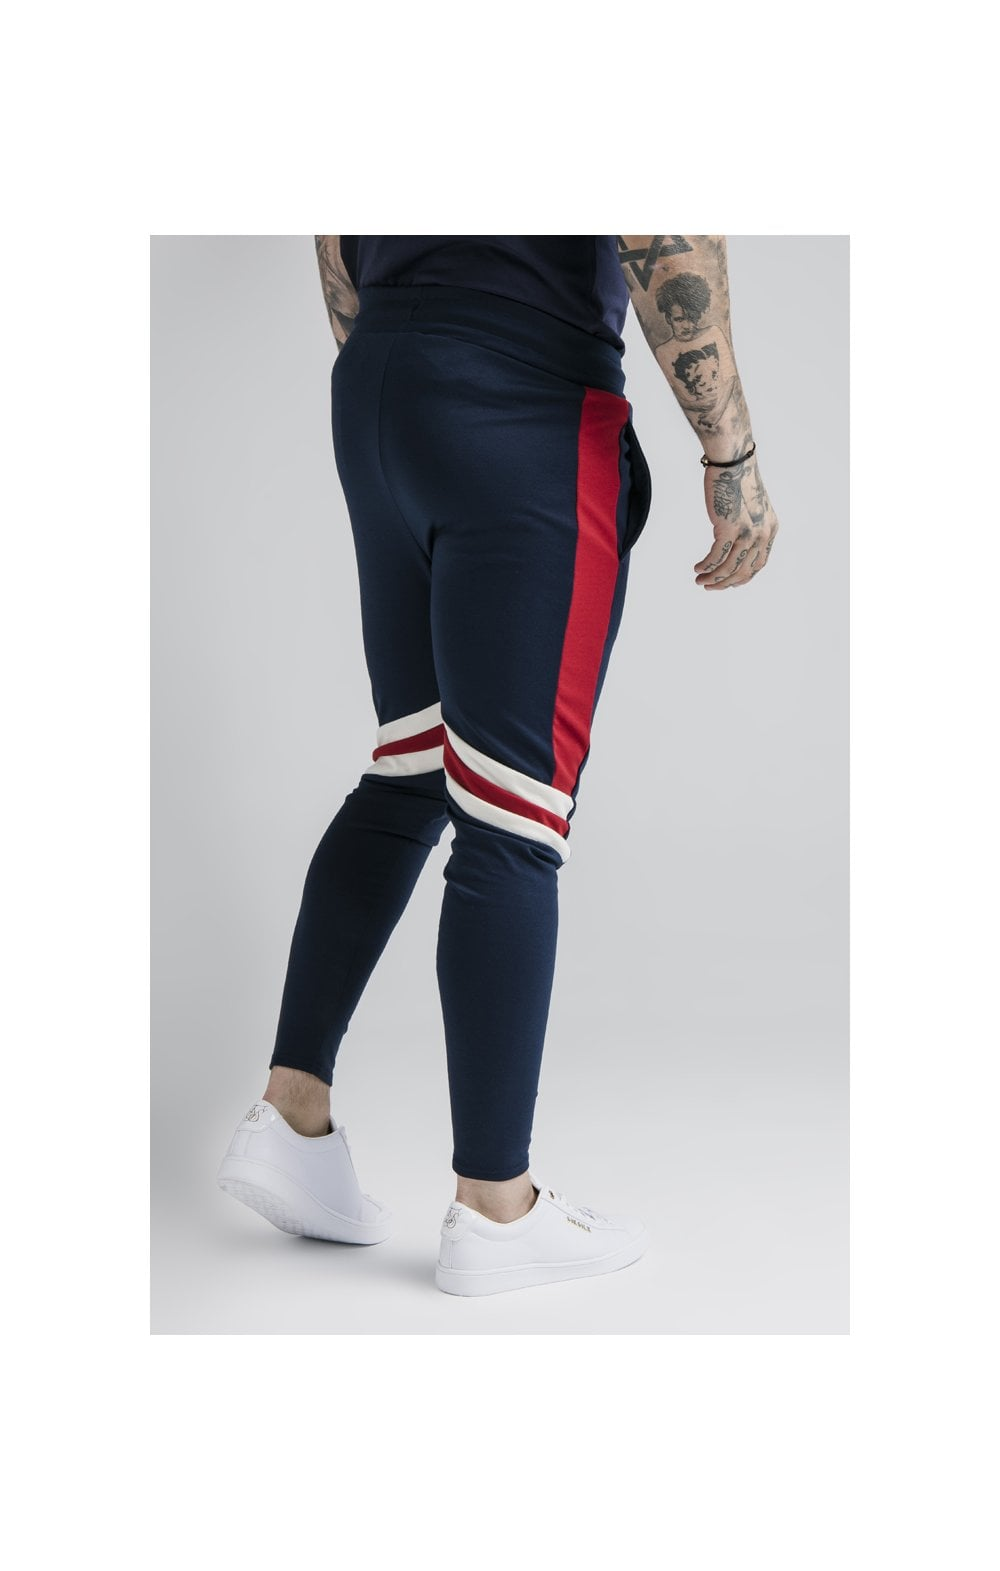 SikSilk Retro Panel Track Pants - Navy, Red & Off White (4)